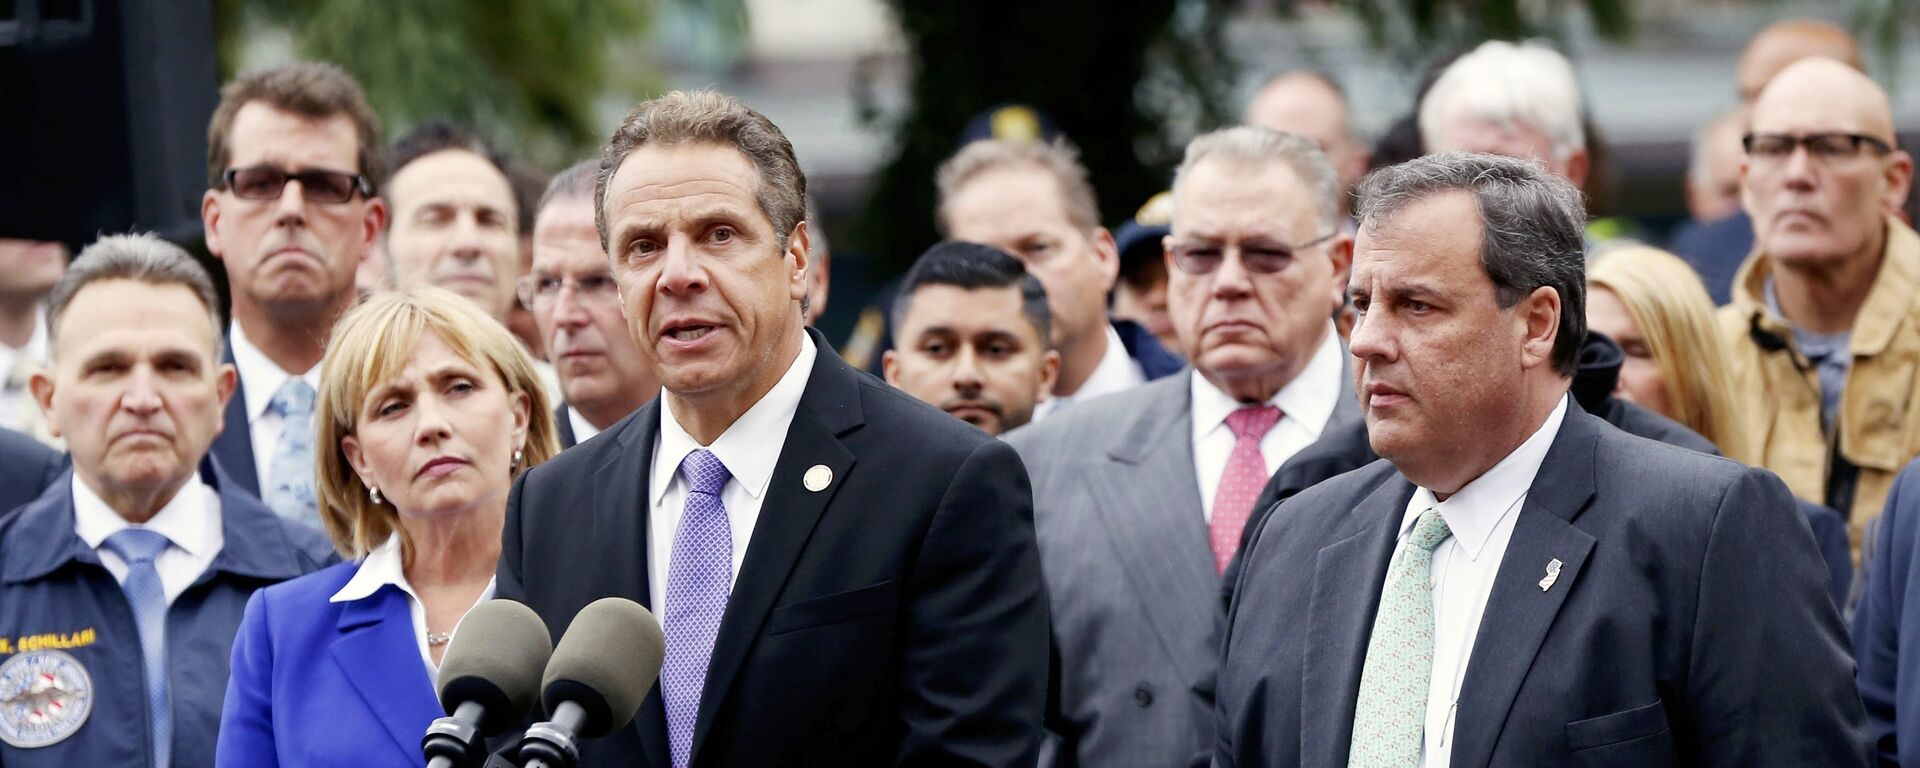 New Jersey Governor Chris Christie (R) looks on as New York Governor Andrew Cuomo speaks to media after a New Jersey Transit train derailed and crashed through the station in Hoboken, New Jersey, U.S. September 29, 2016. - Sputnik Mundo, 1920, 03.08.2021